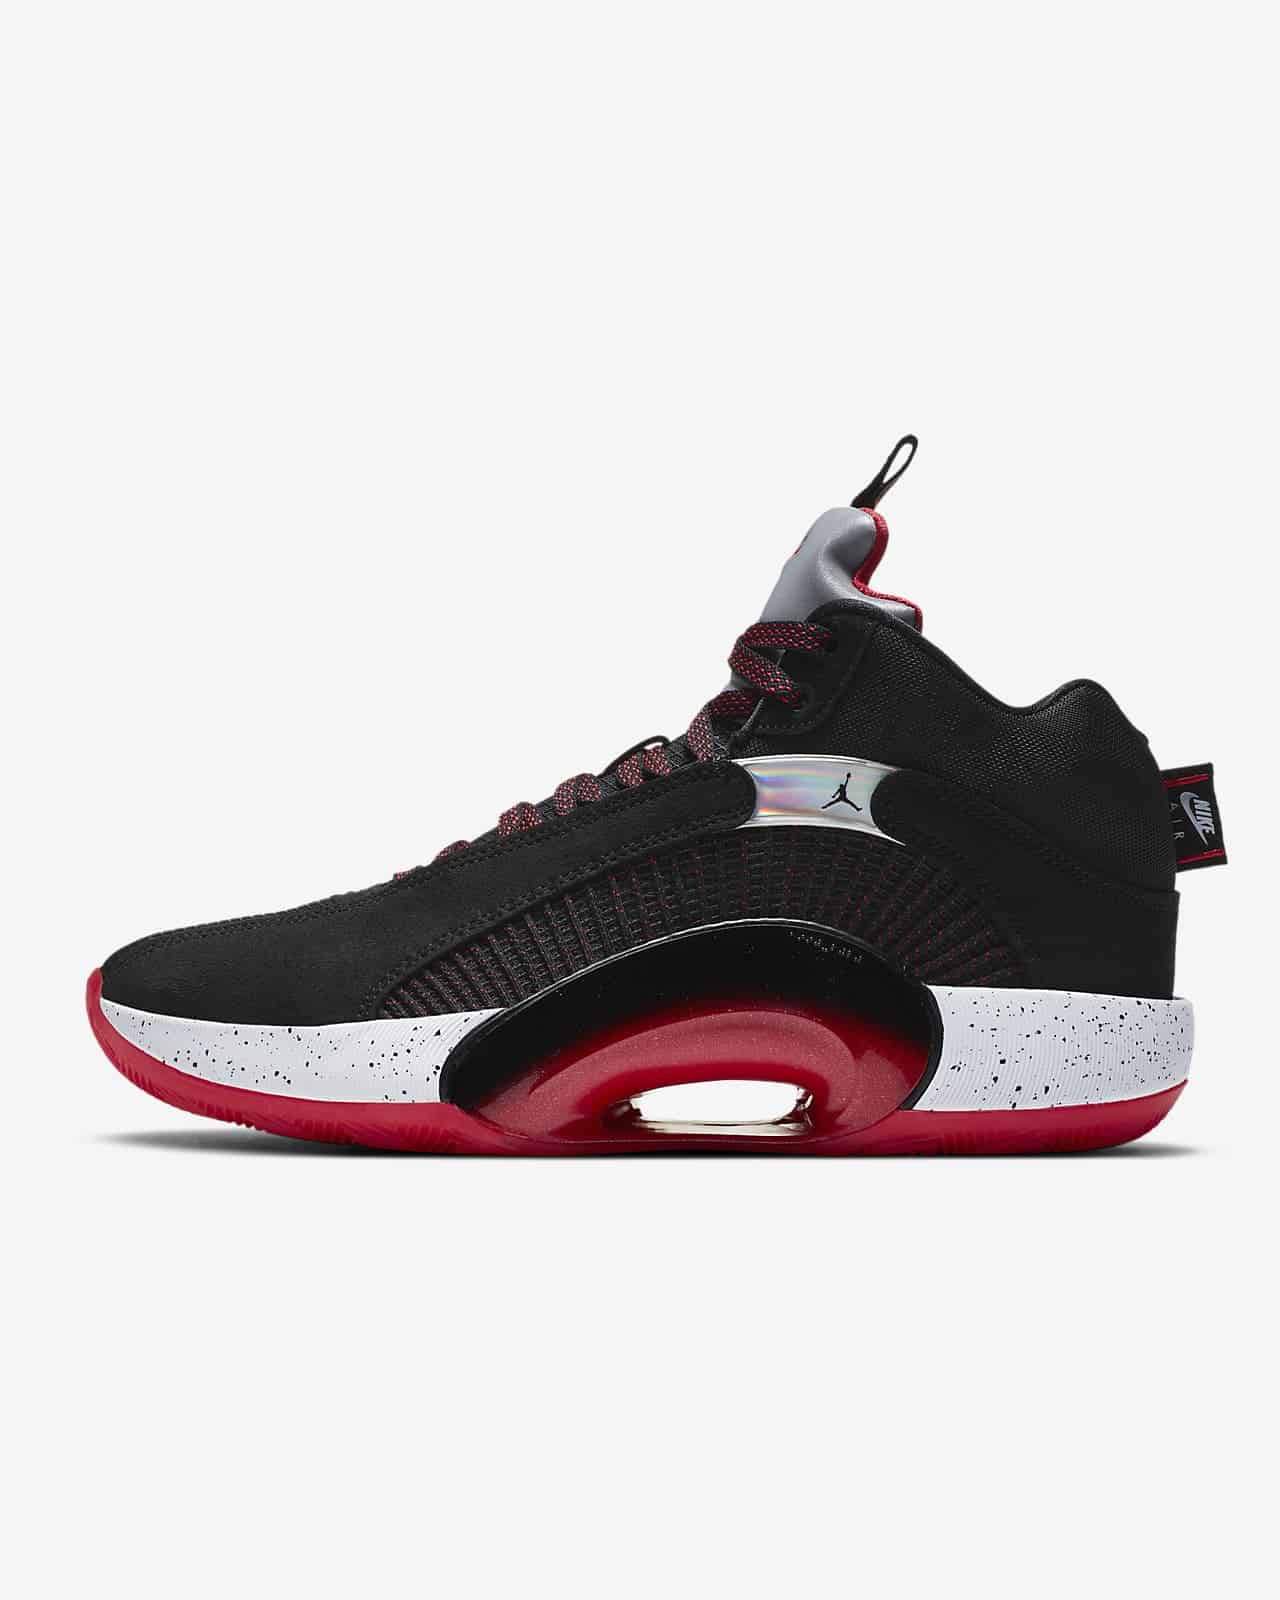 Best Basketball Shoes for Wide Feet: AJ 35